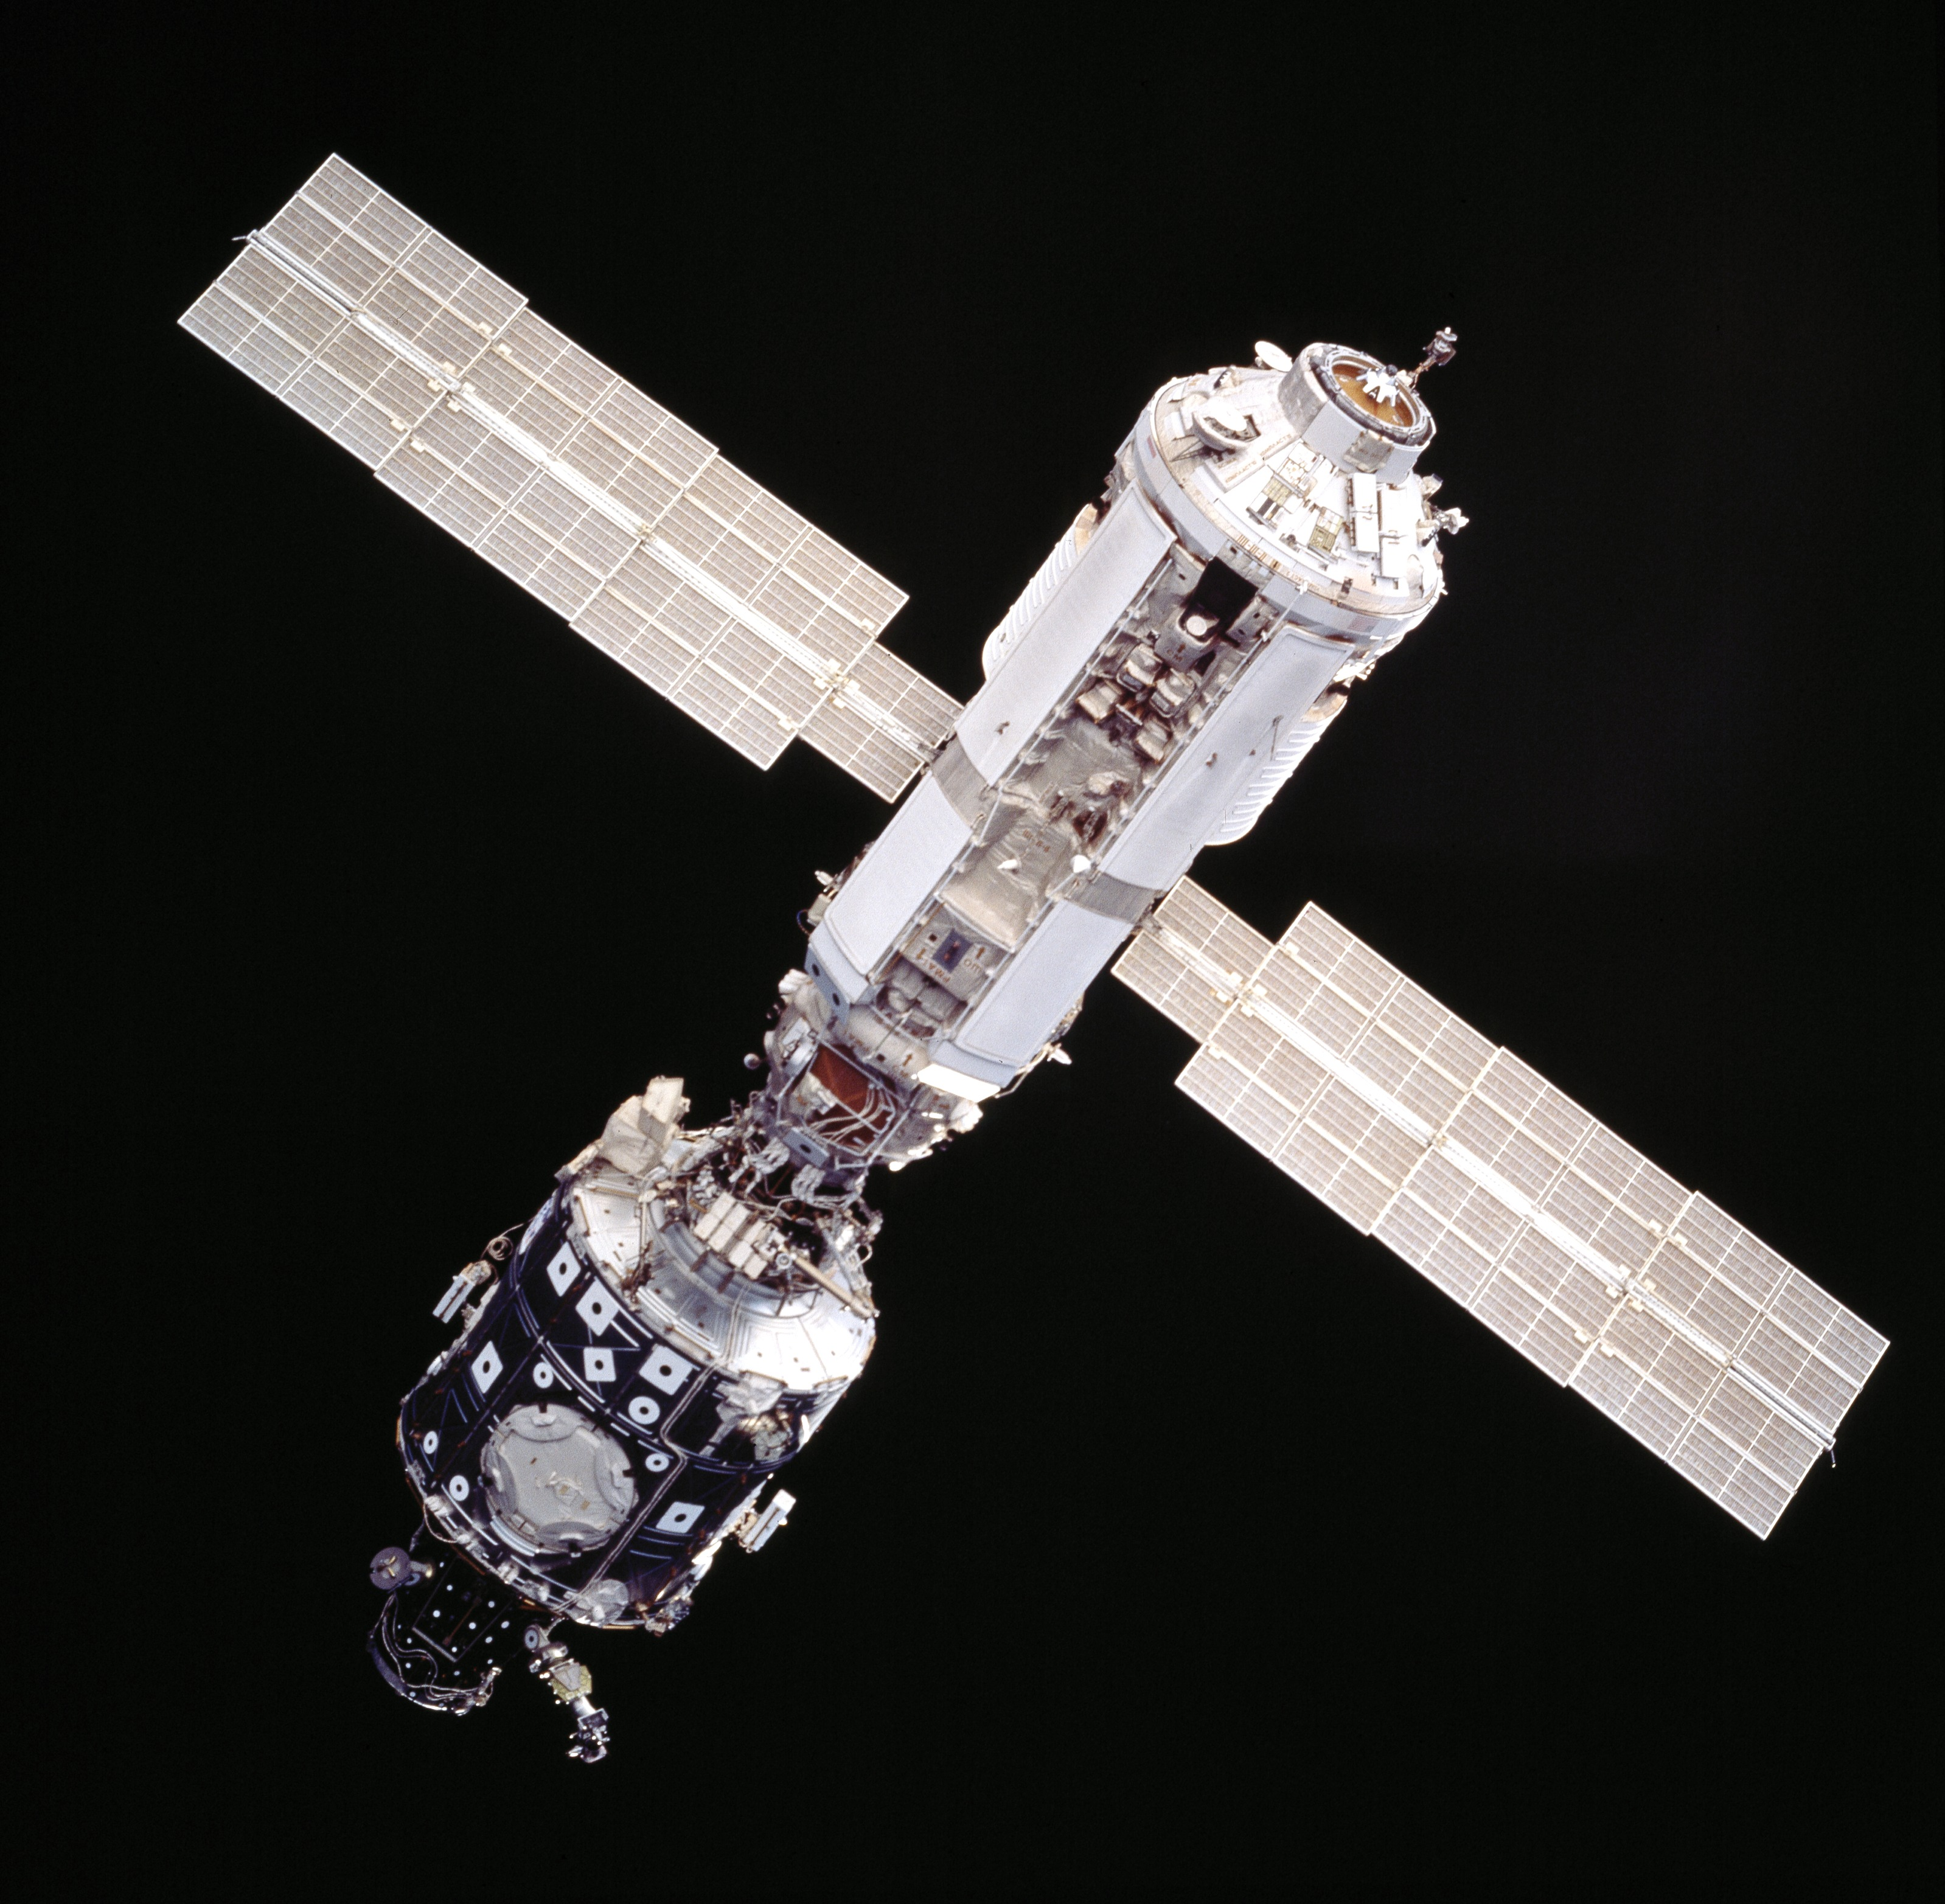 ISS_from_Atlantis_-_Sts101-714-016.jpg